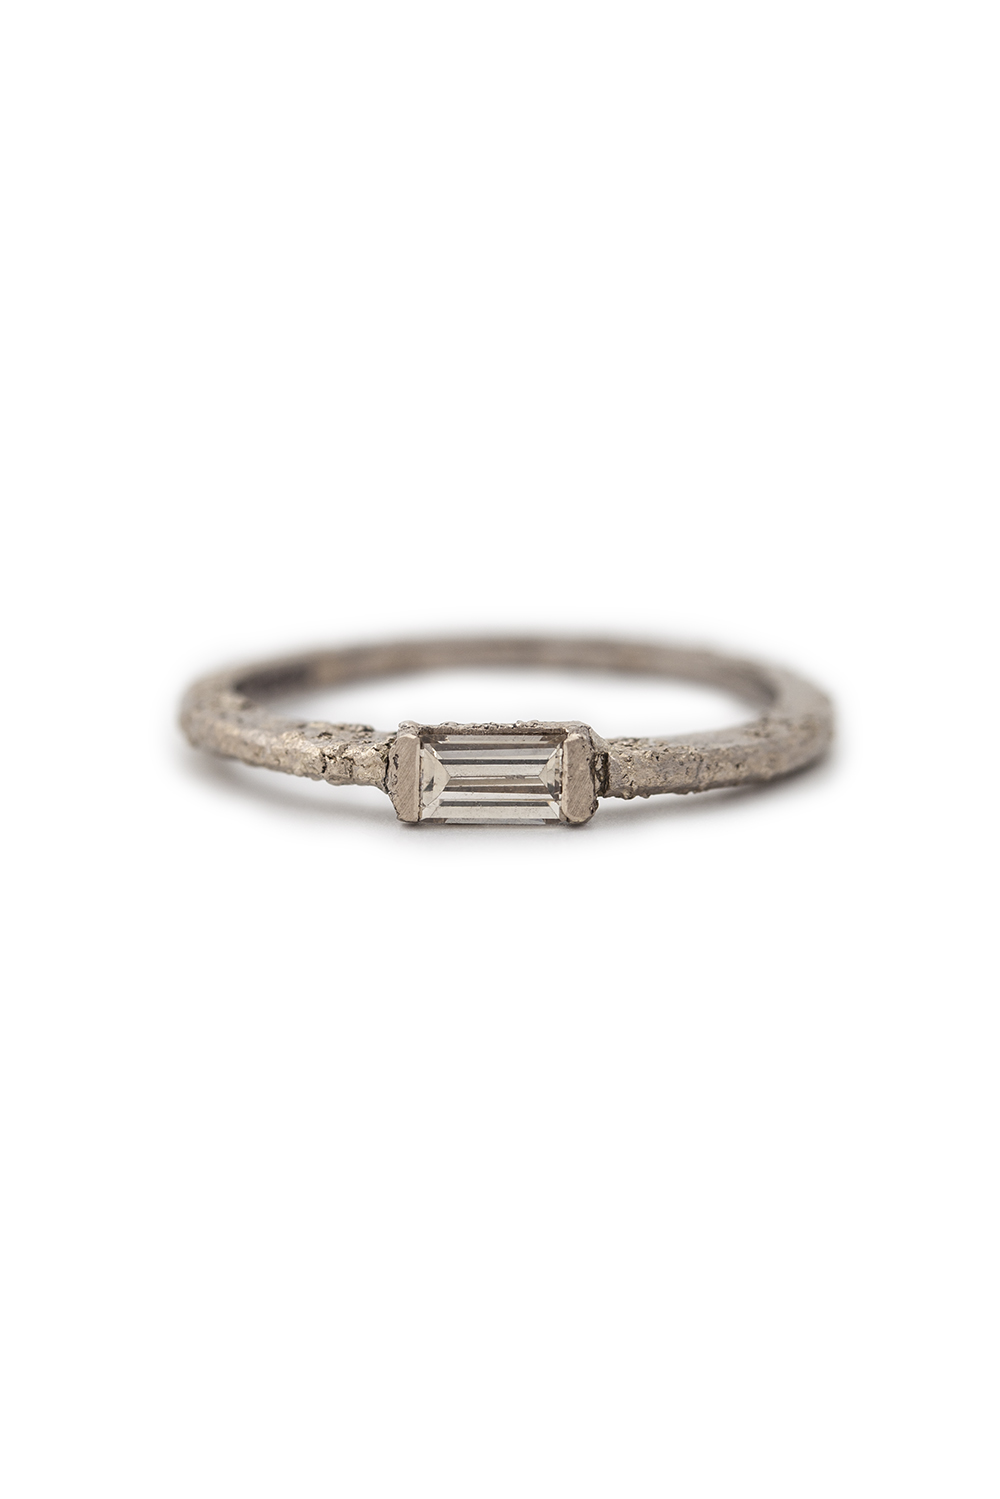 Baguette brilliant cut brown diamond in white gold, £1620